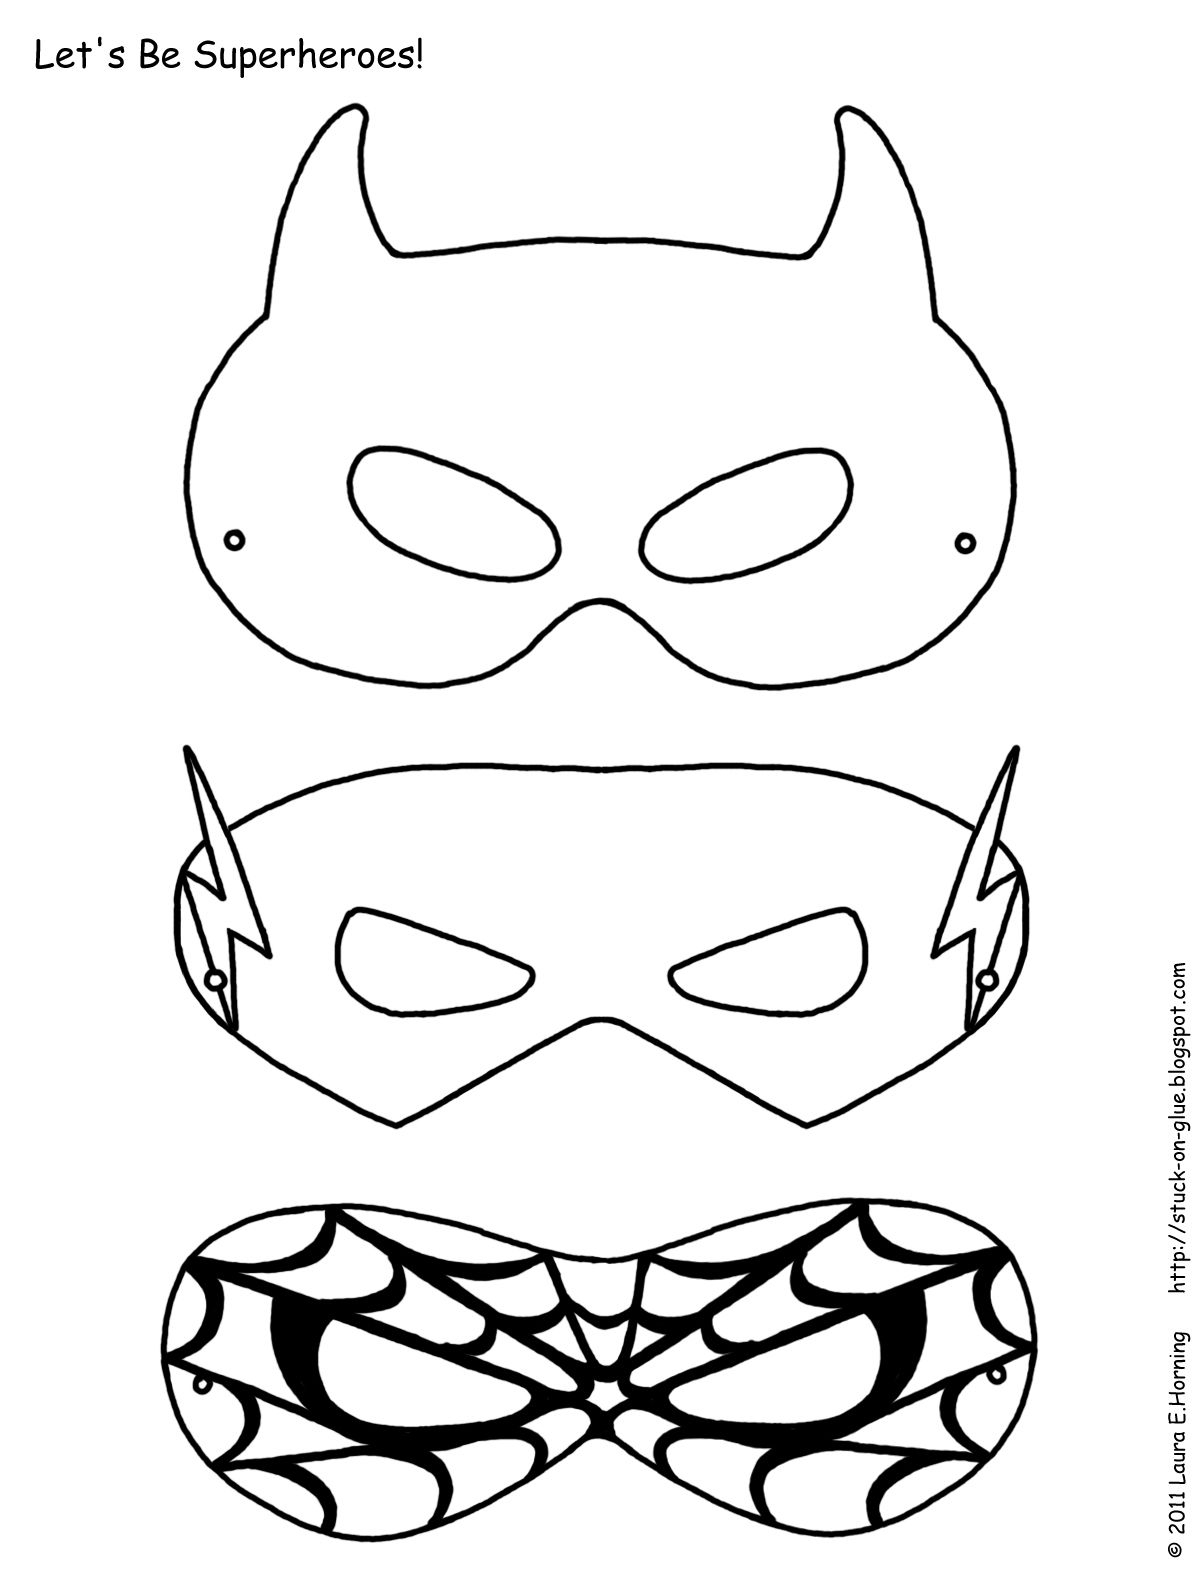 Templates For Superhero Masks   How Have We Survived?  Free Mask Templates